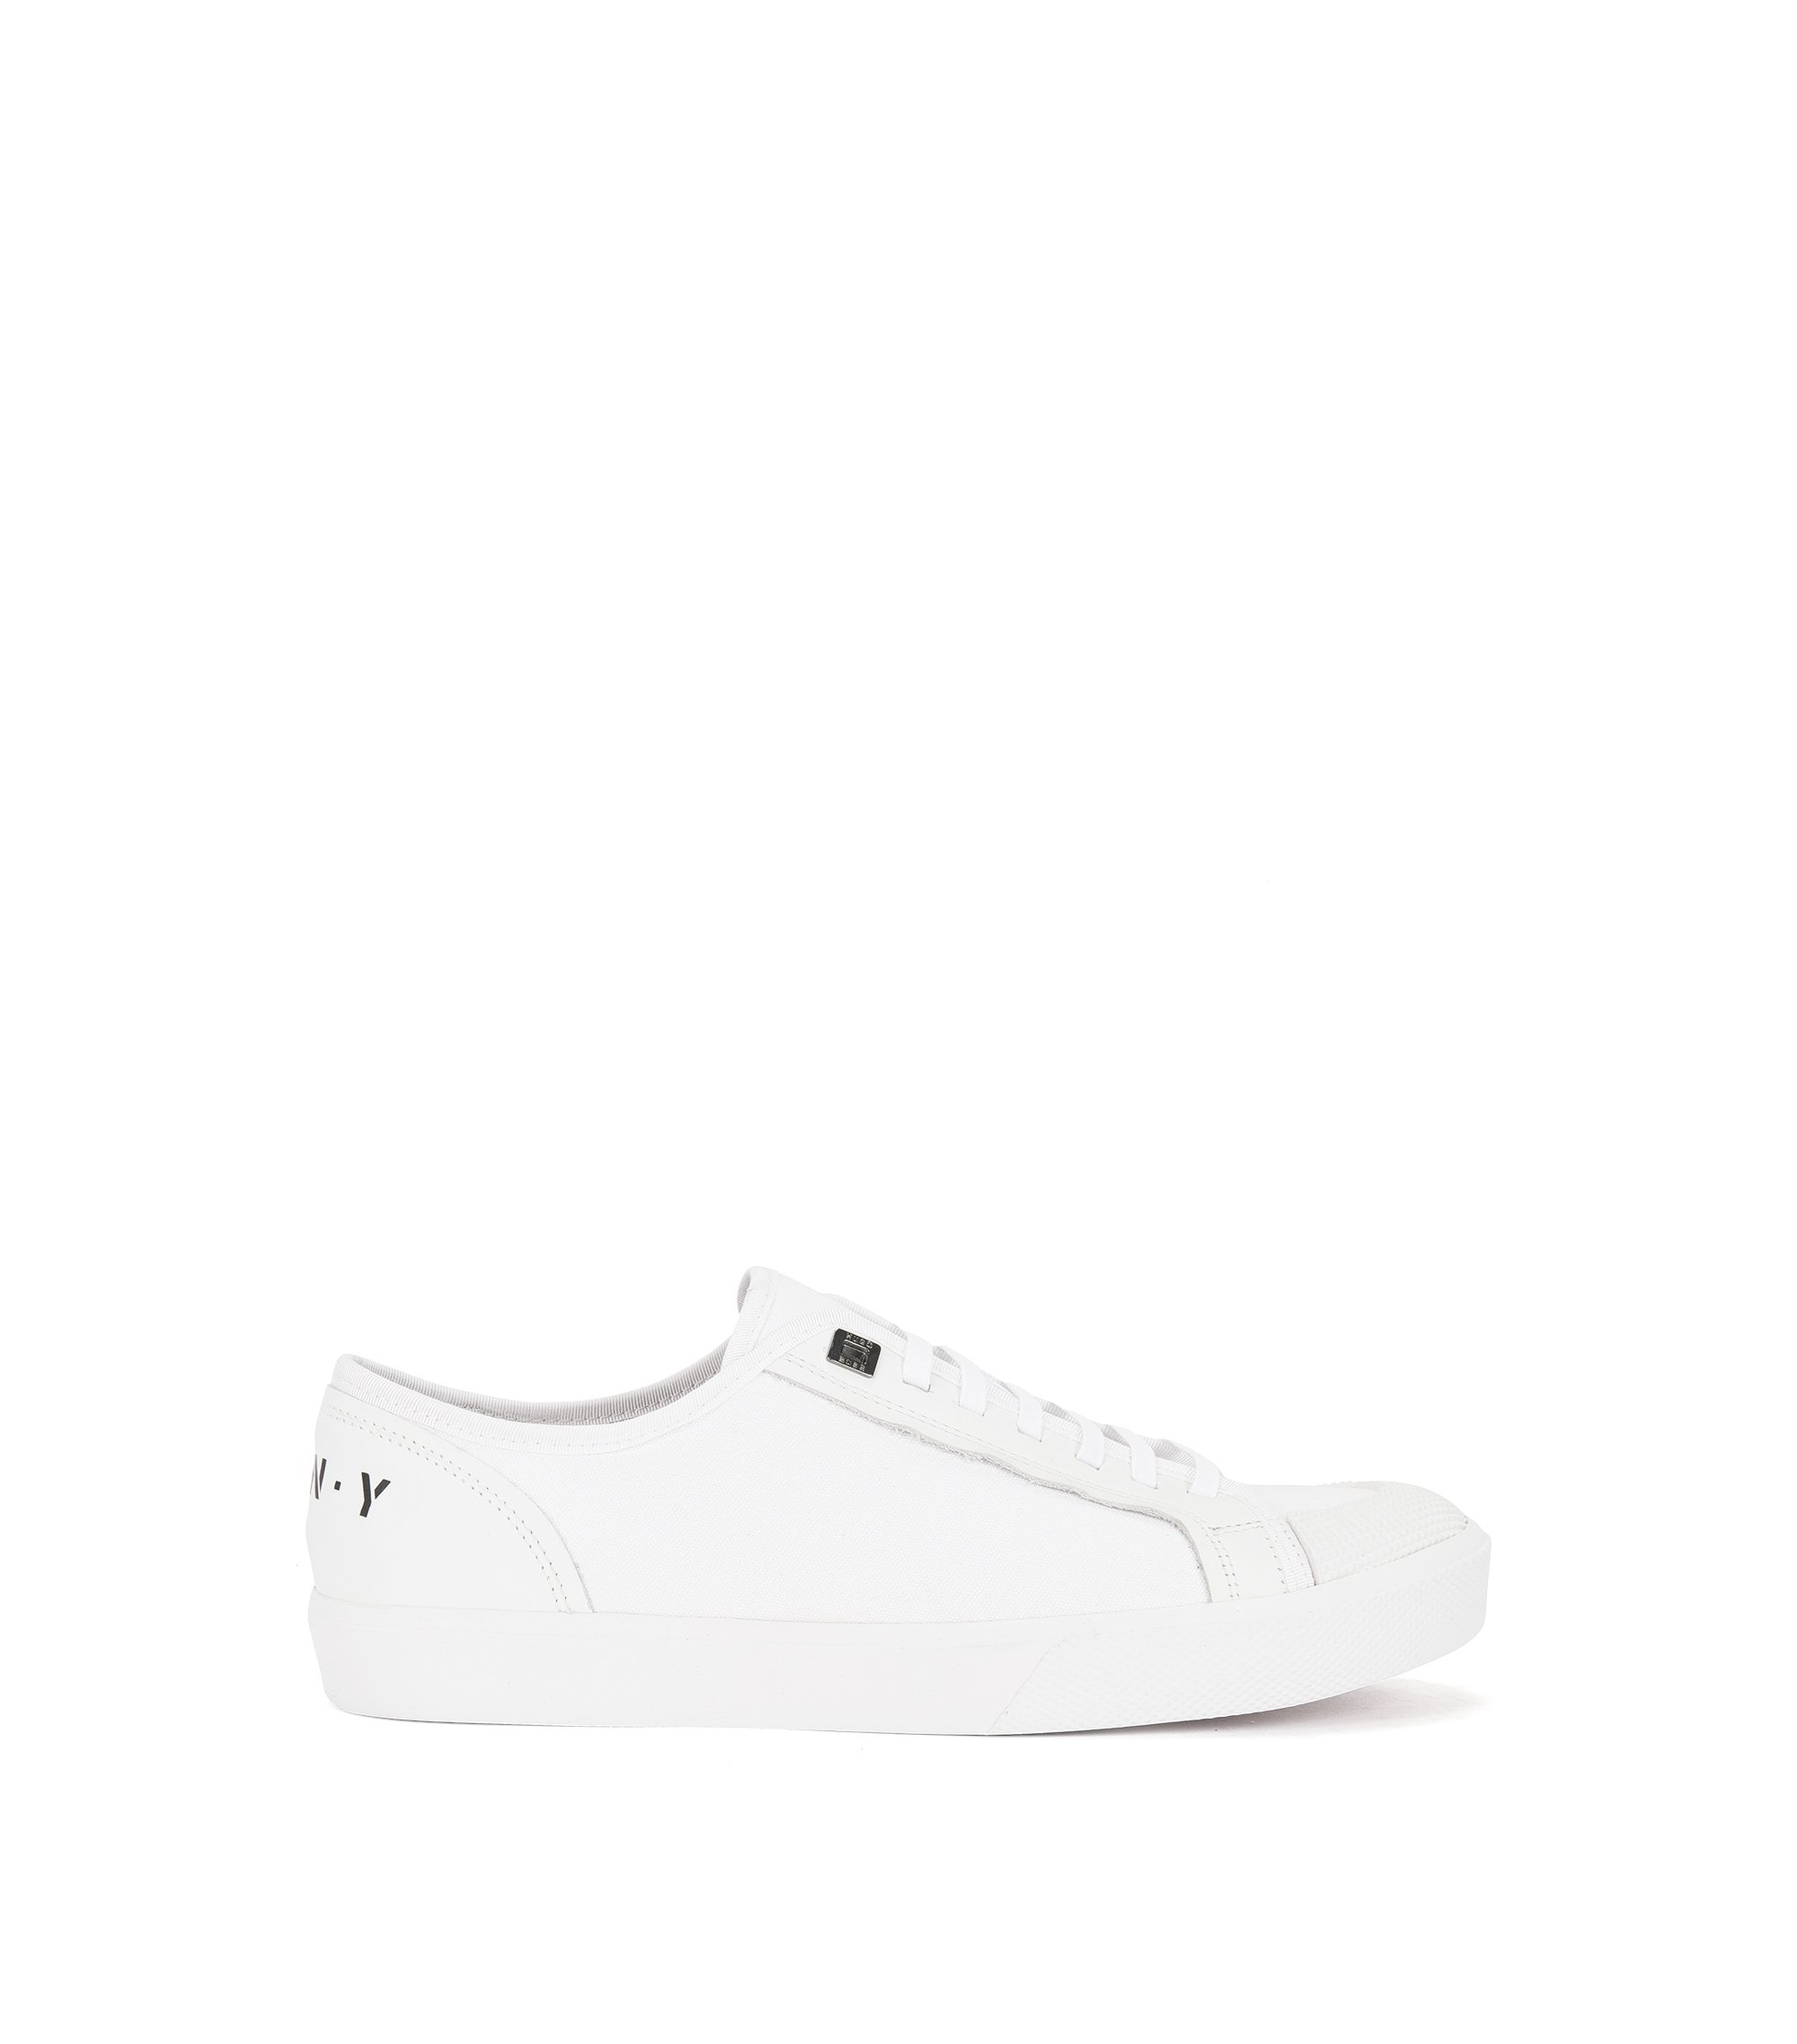 Runway Edition low-top trainers in cotton and leather, White